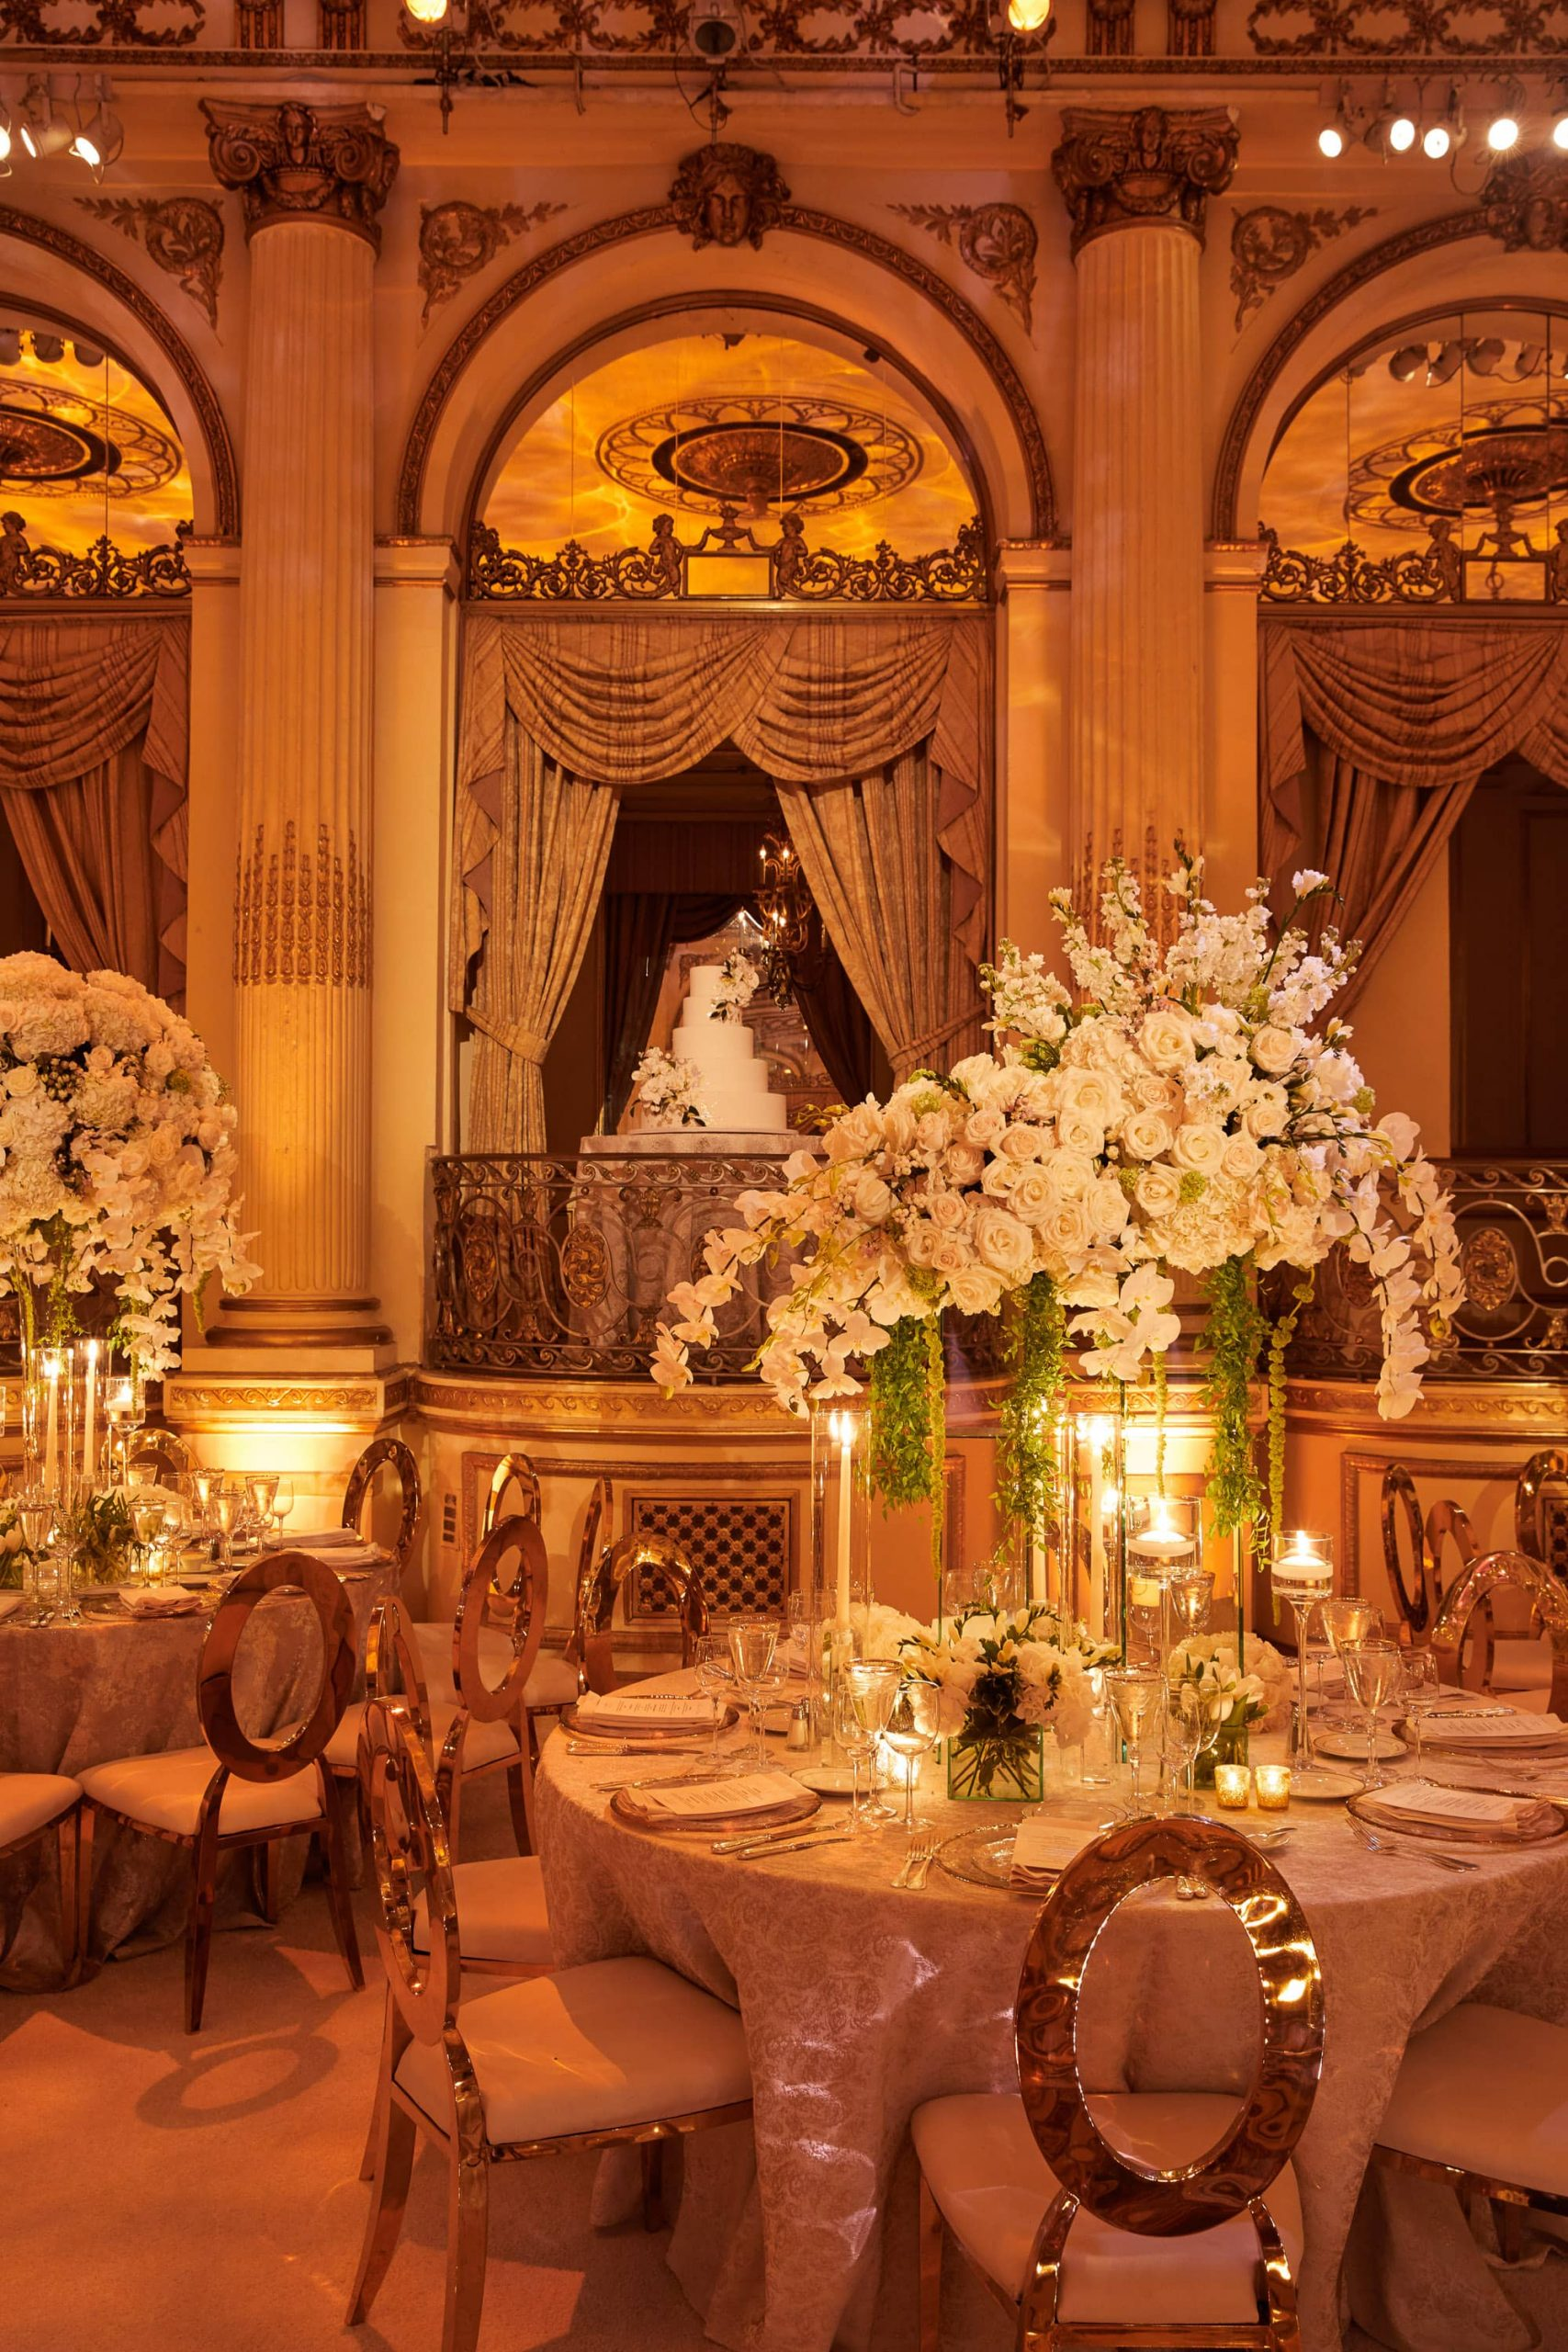 Floral arrangements designed by Ed Libby at reception at this classic autumn wedding at The Plaza in NYC | Photo by Christian Oth Studio